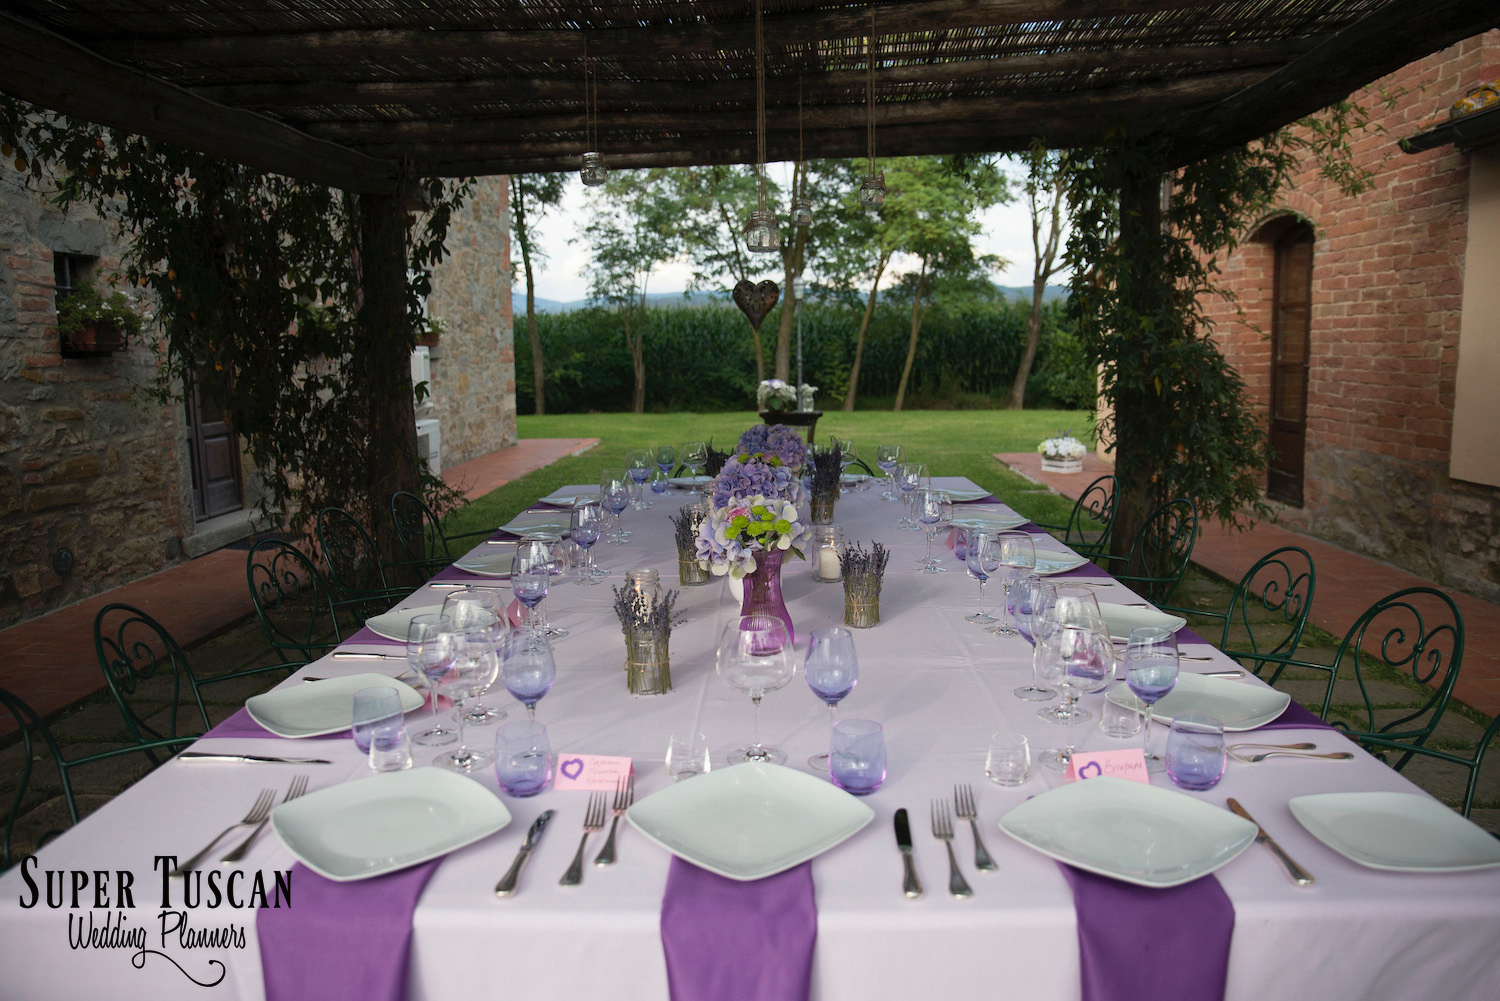 65Wedding on Trasimeno Lake - Umbria